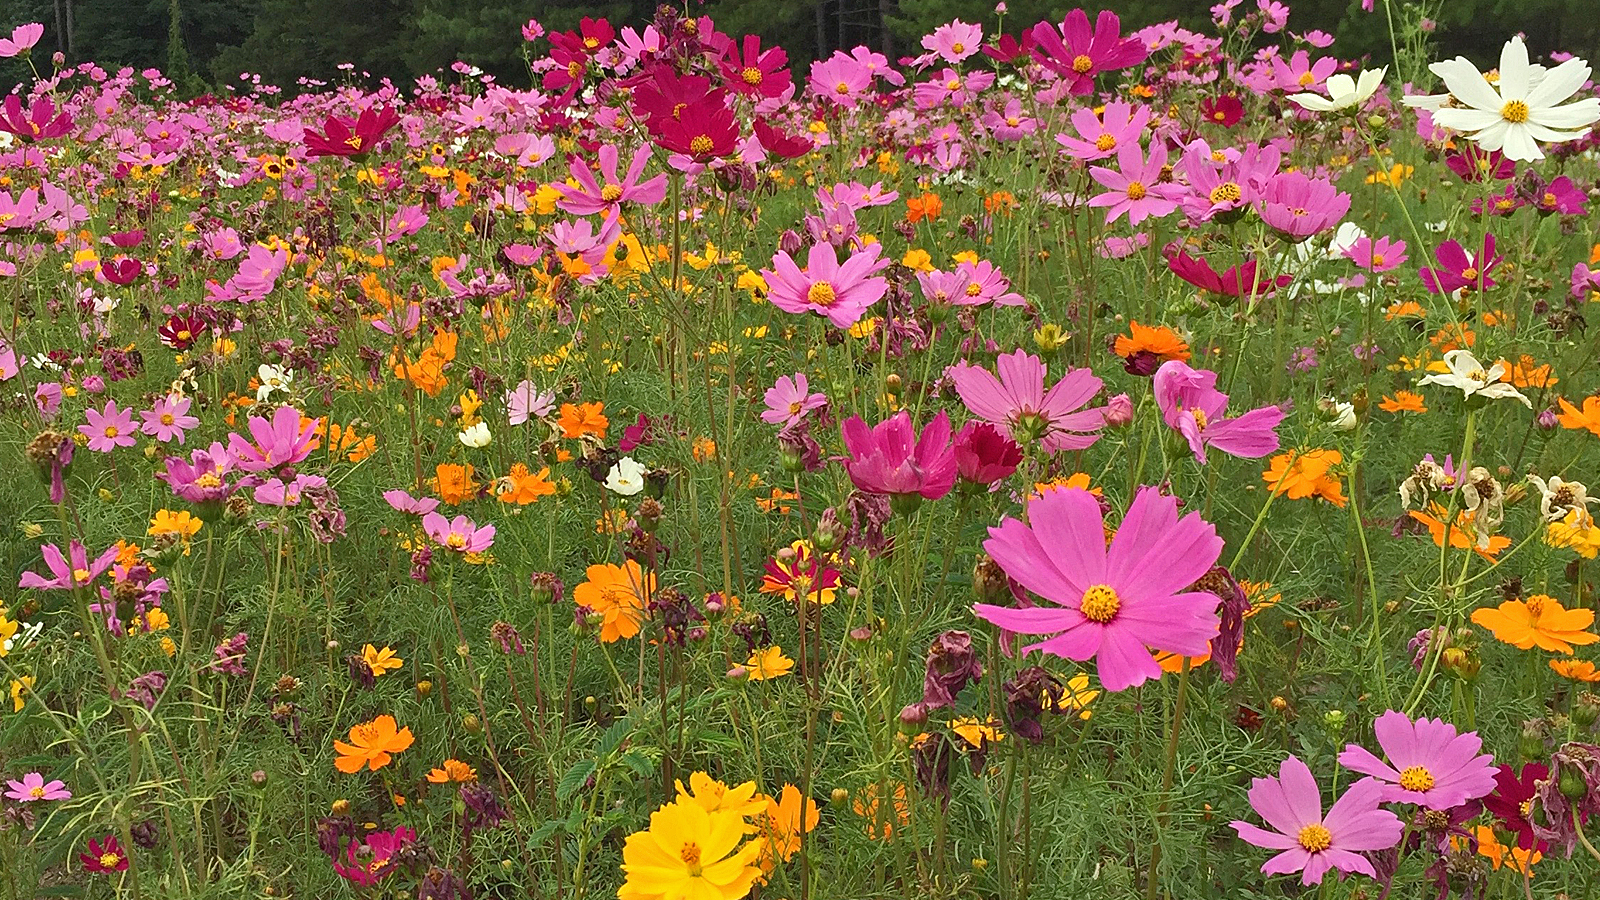 Keep mississippi beautifuls wildflower trails are taking bloom keep mississippi beautifuls wildflower trails of mississippi initiative is showering the state with color izmirmasajfo